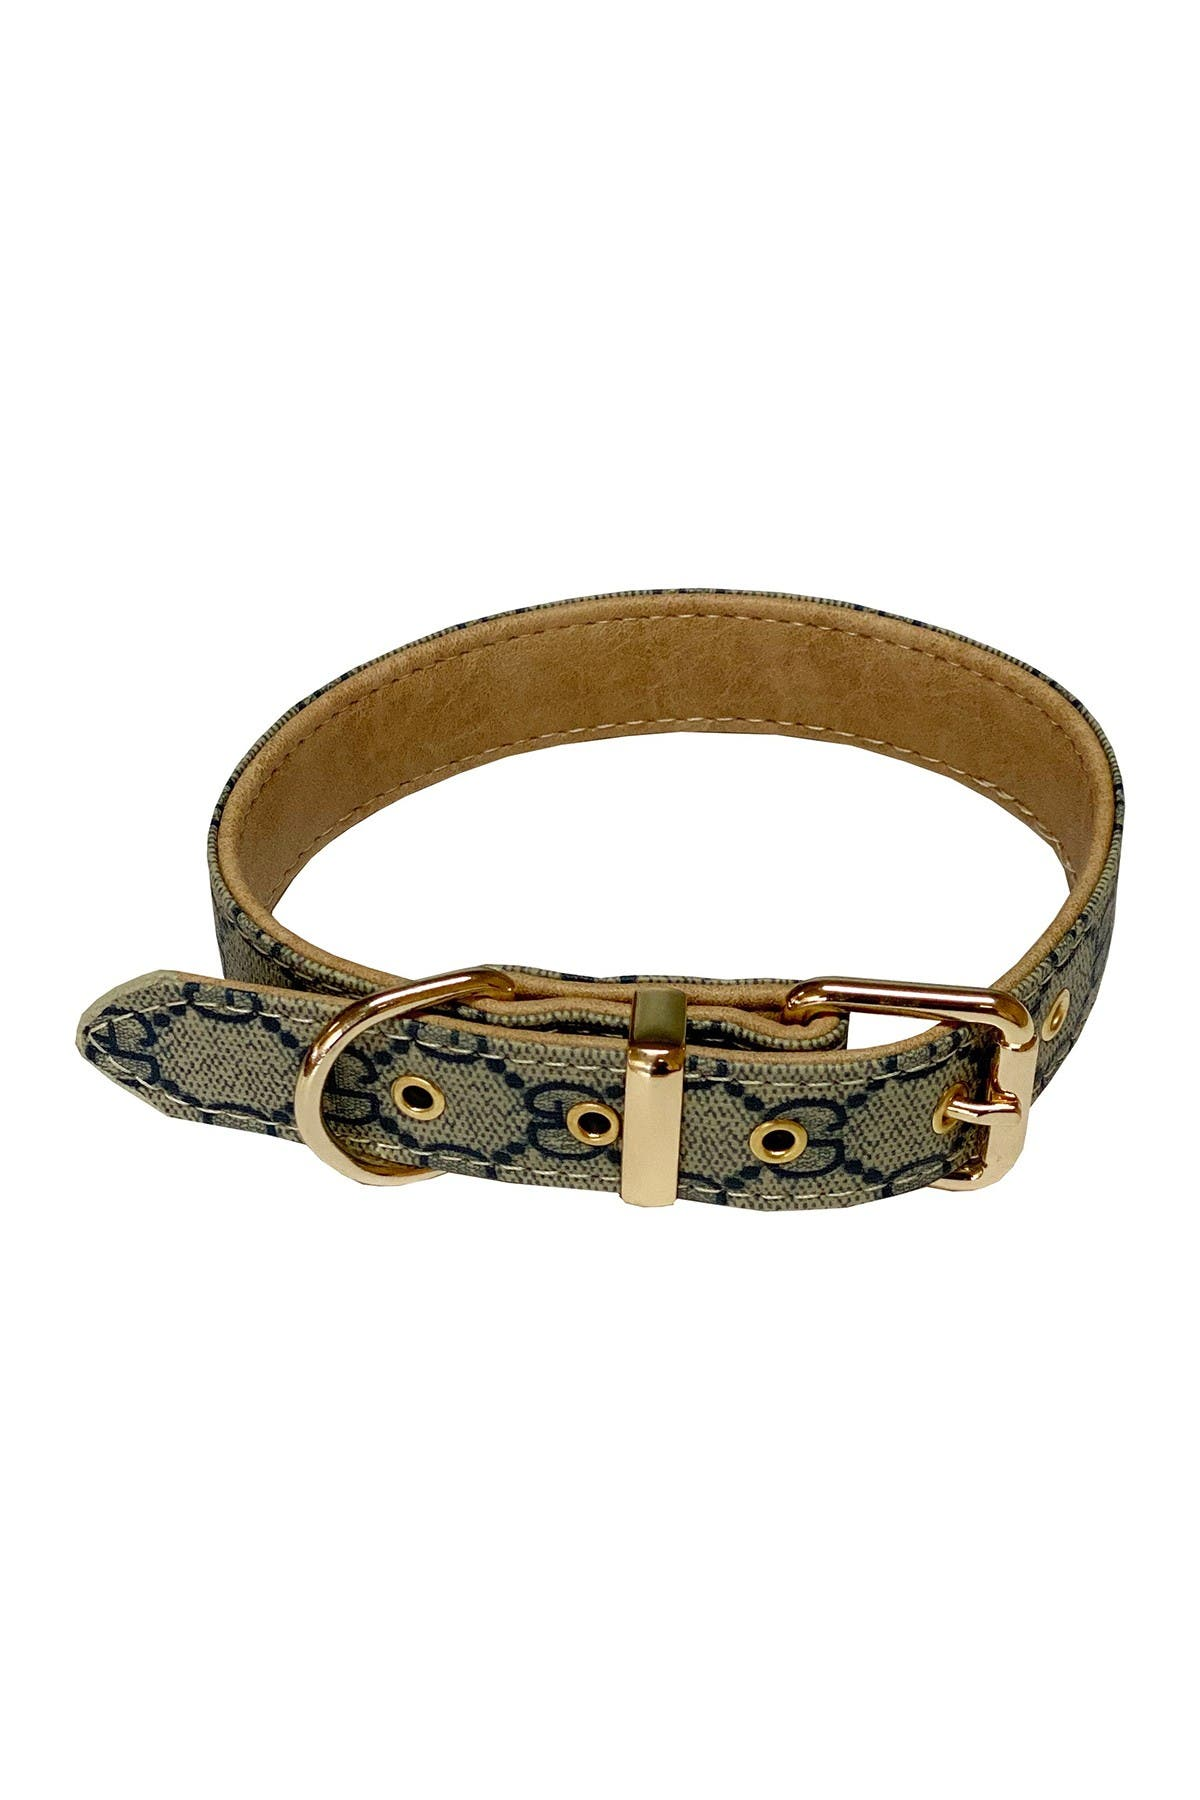 Image of Dogs of Glamour Sofia Dog Collar - Small - Blue/Beige